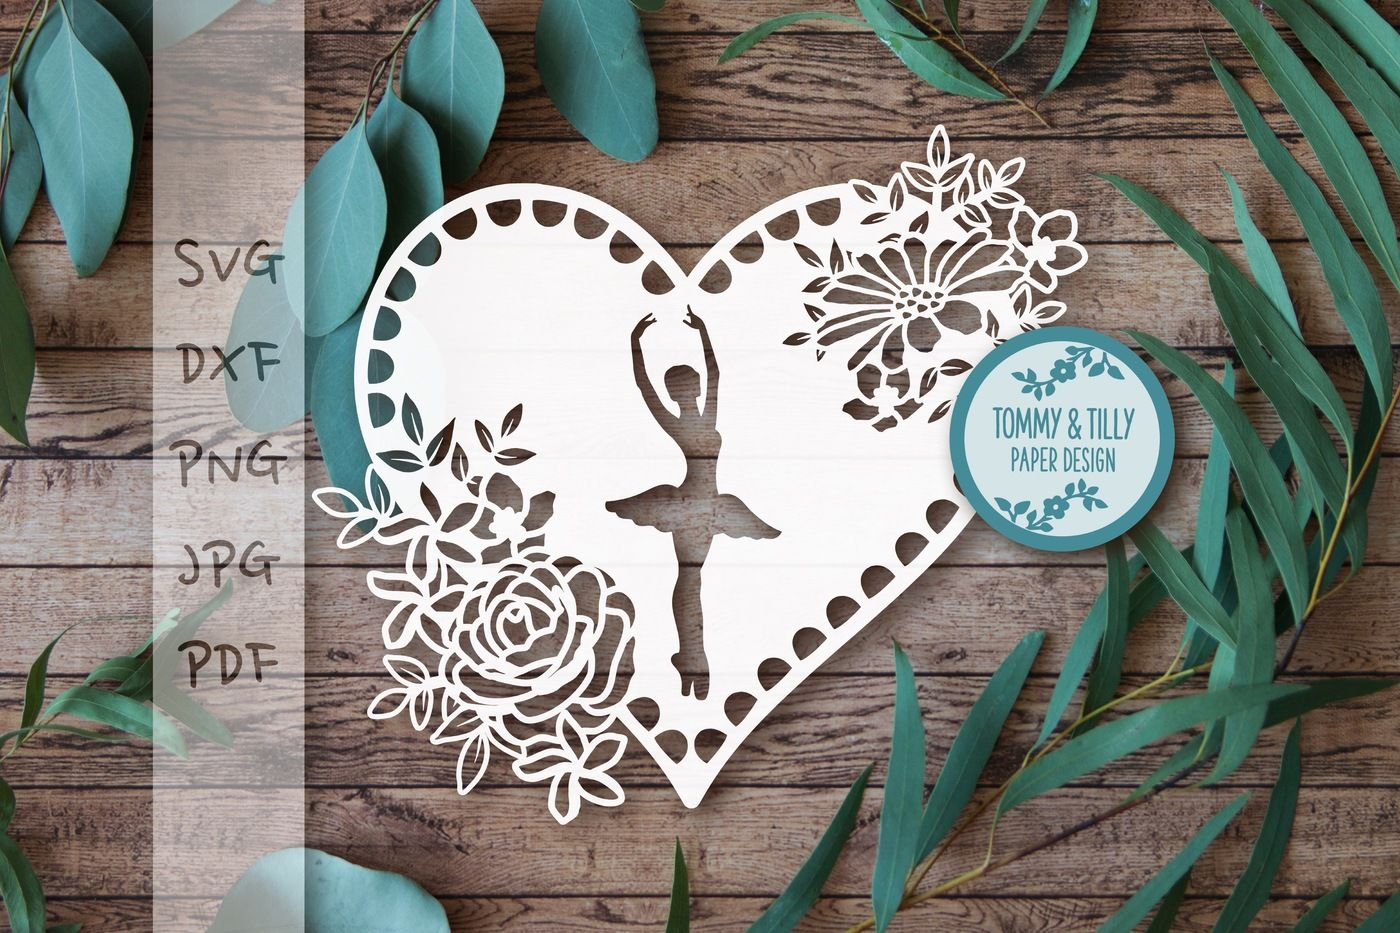 Ballerina Hearts X 2 Cutting Files Svg Dxf Pdf Png By Tommy And